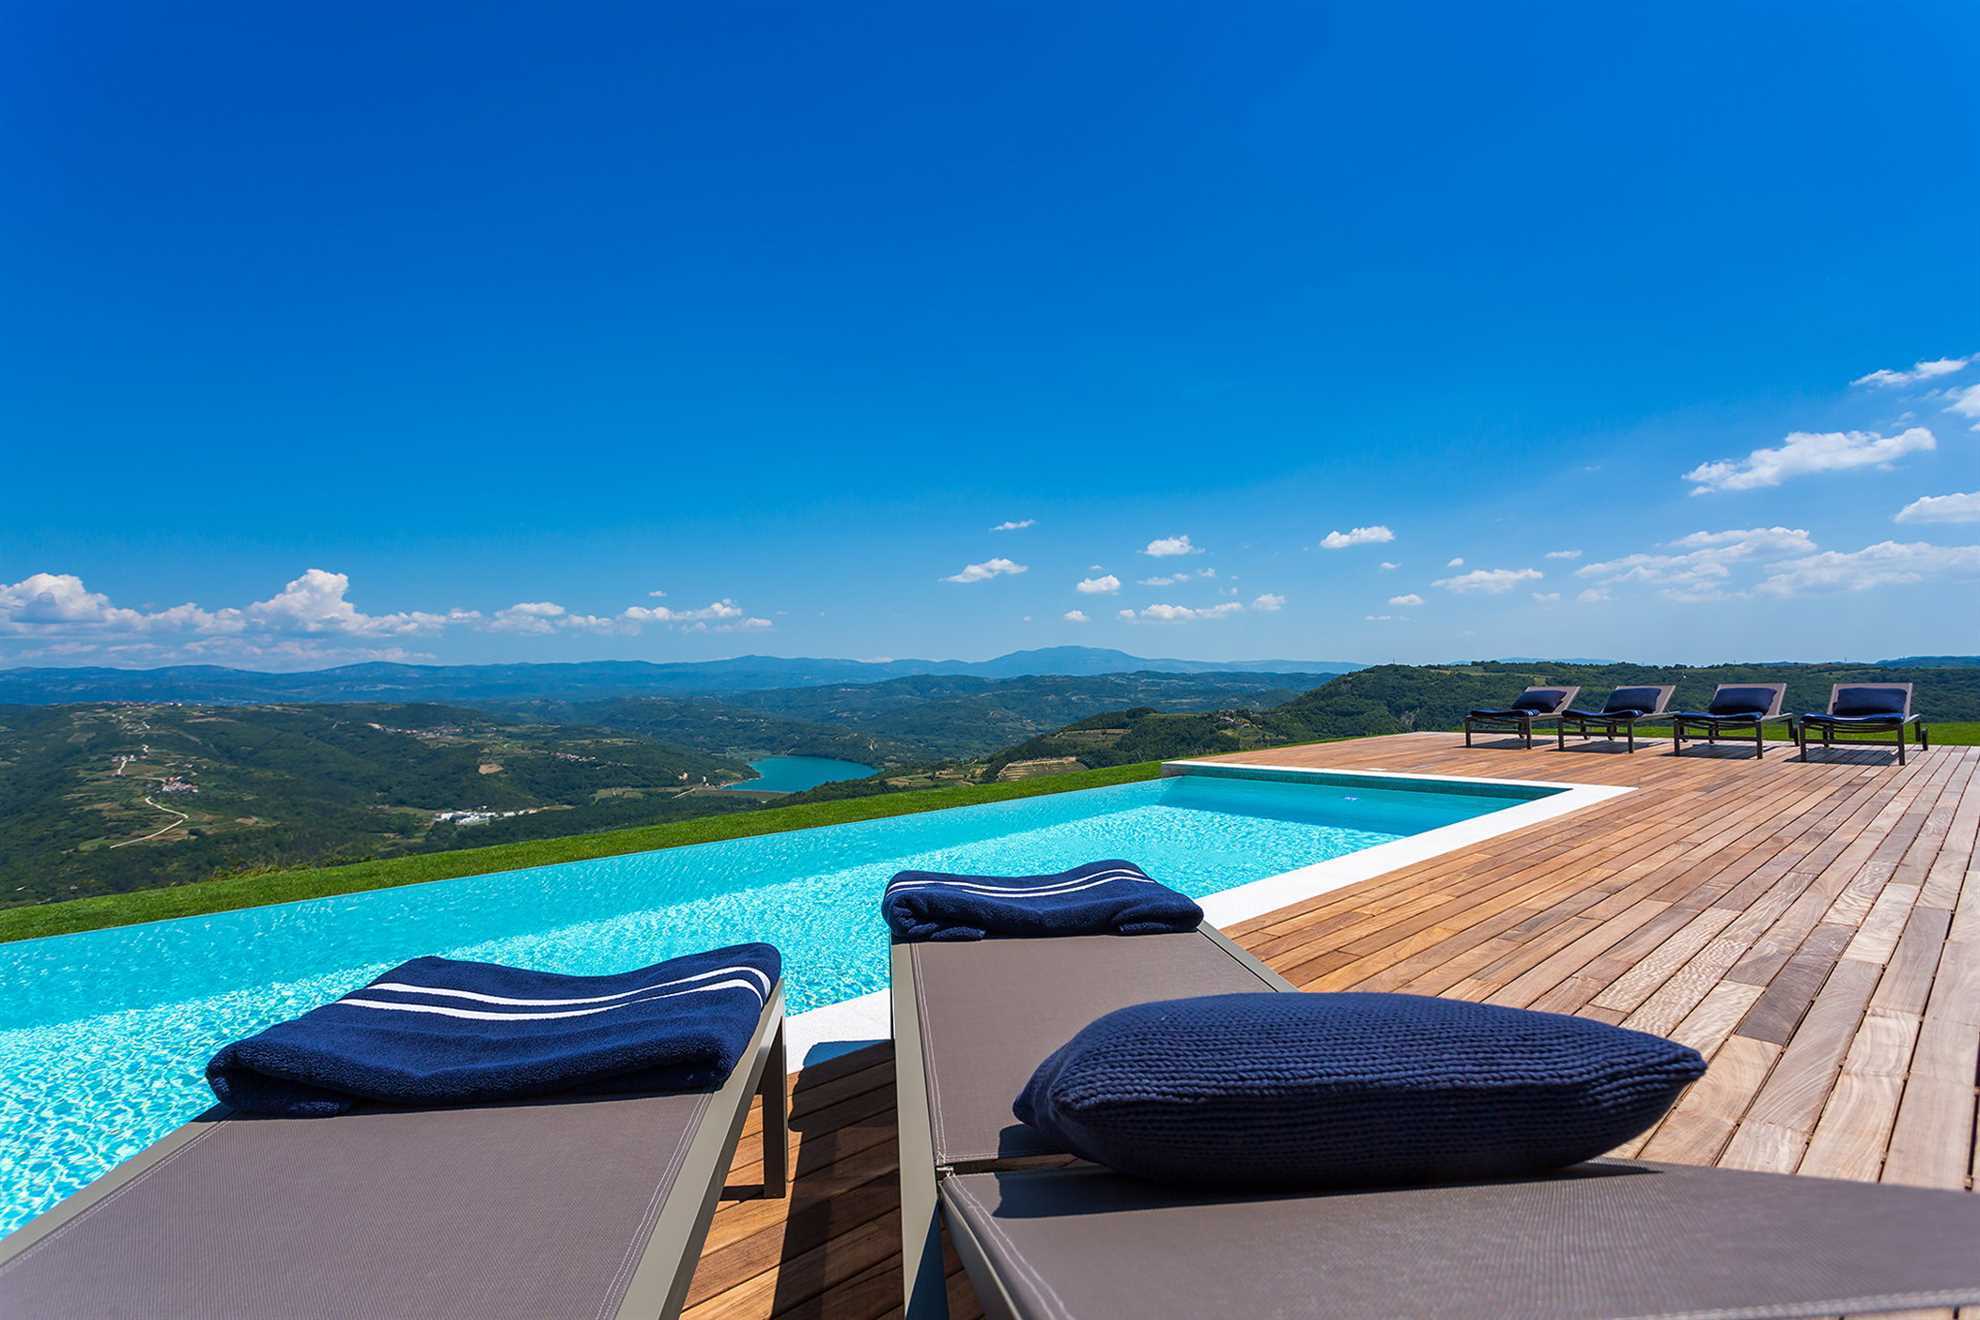 Panoramic view form the pool deck of the luxury Villa Grand Horizon in the Croatian region of Istria